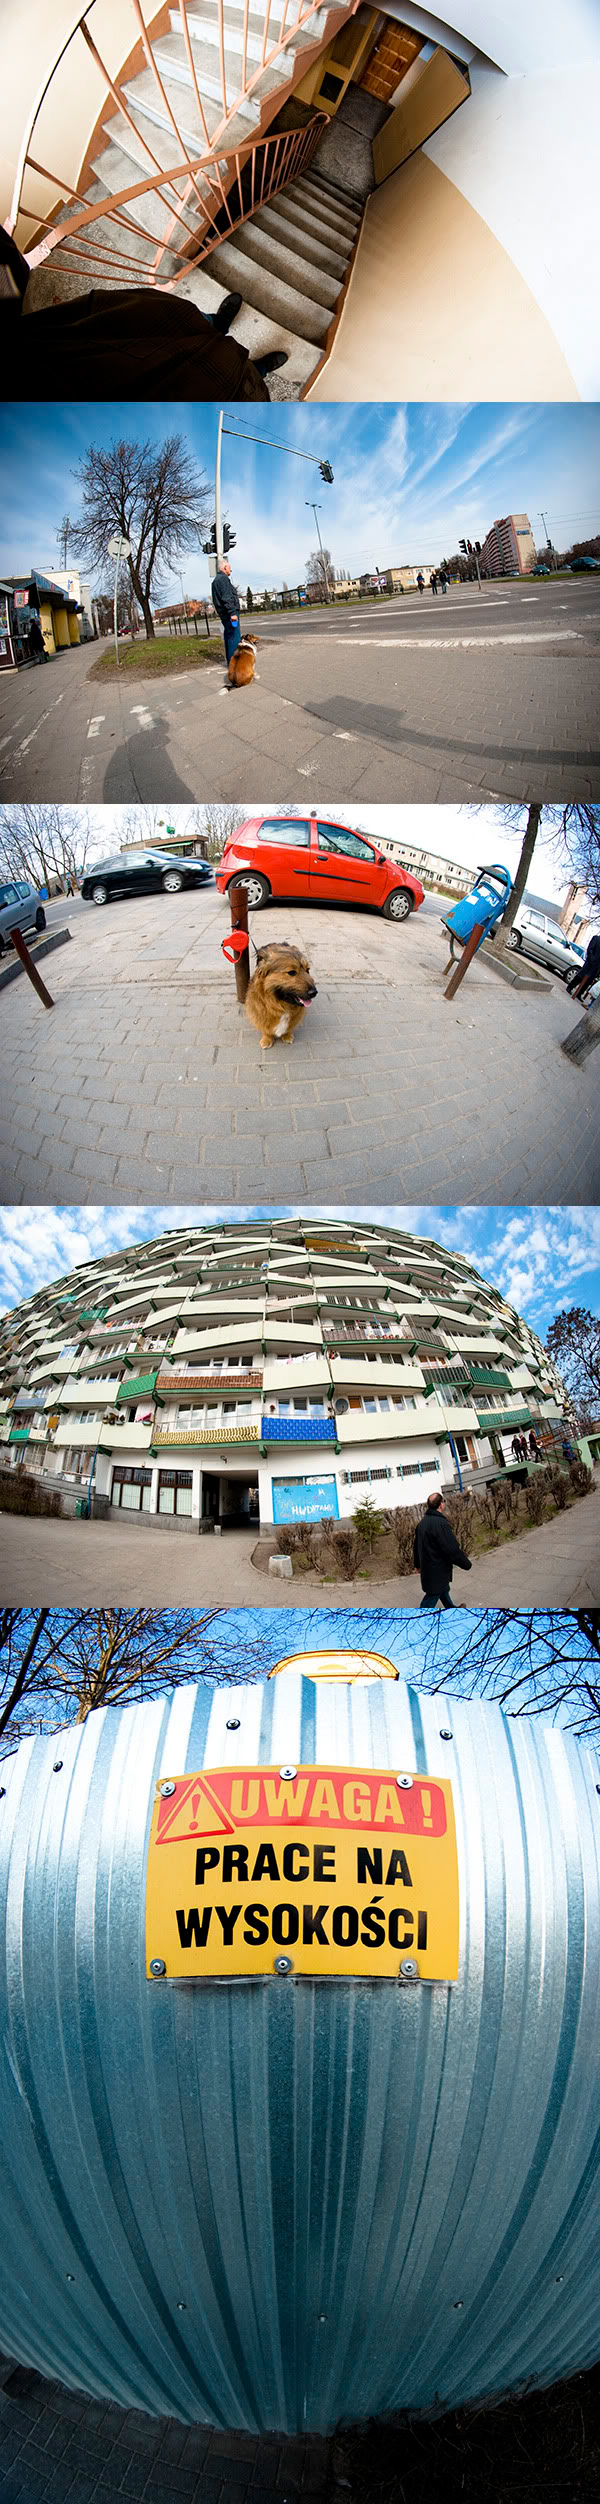 fisheye, rybie oko, ulica, street, pies, dog, plot, fence